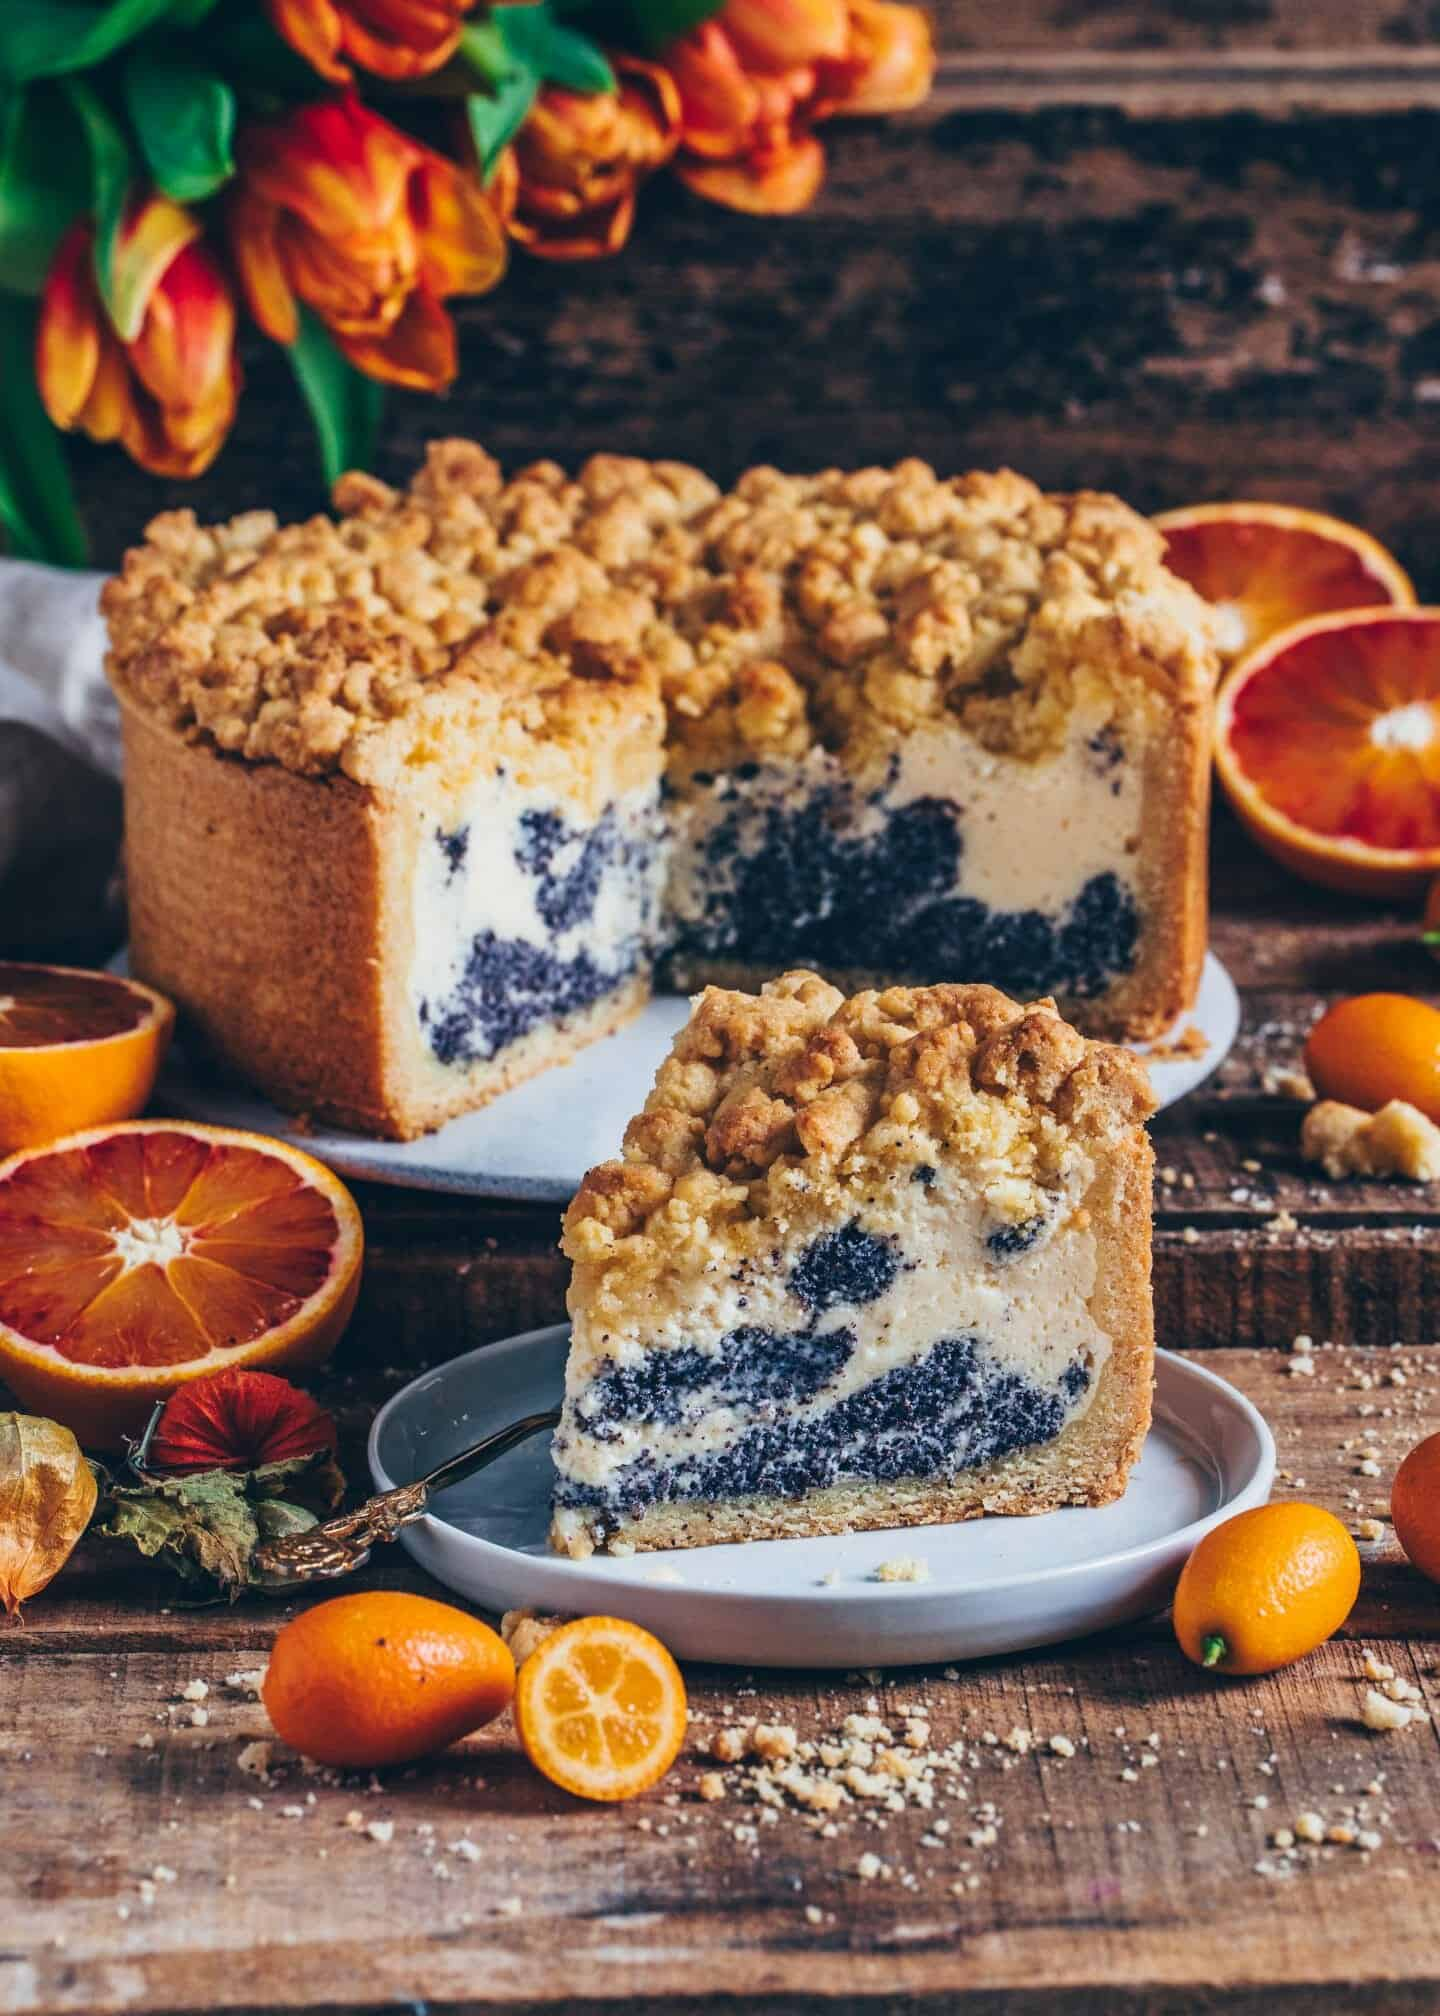 This Poppy Seed Crumble Cake features a delicious Cheesecake layer with dollops of a poppy seed filling, making it to the perfect dessert! Easy Recipe.